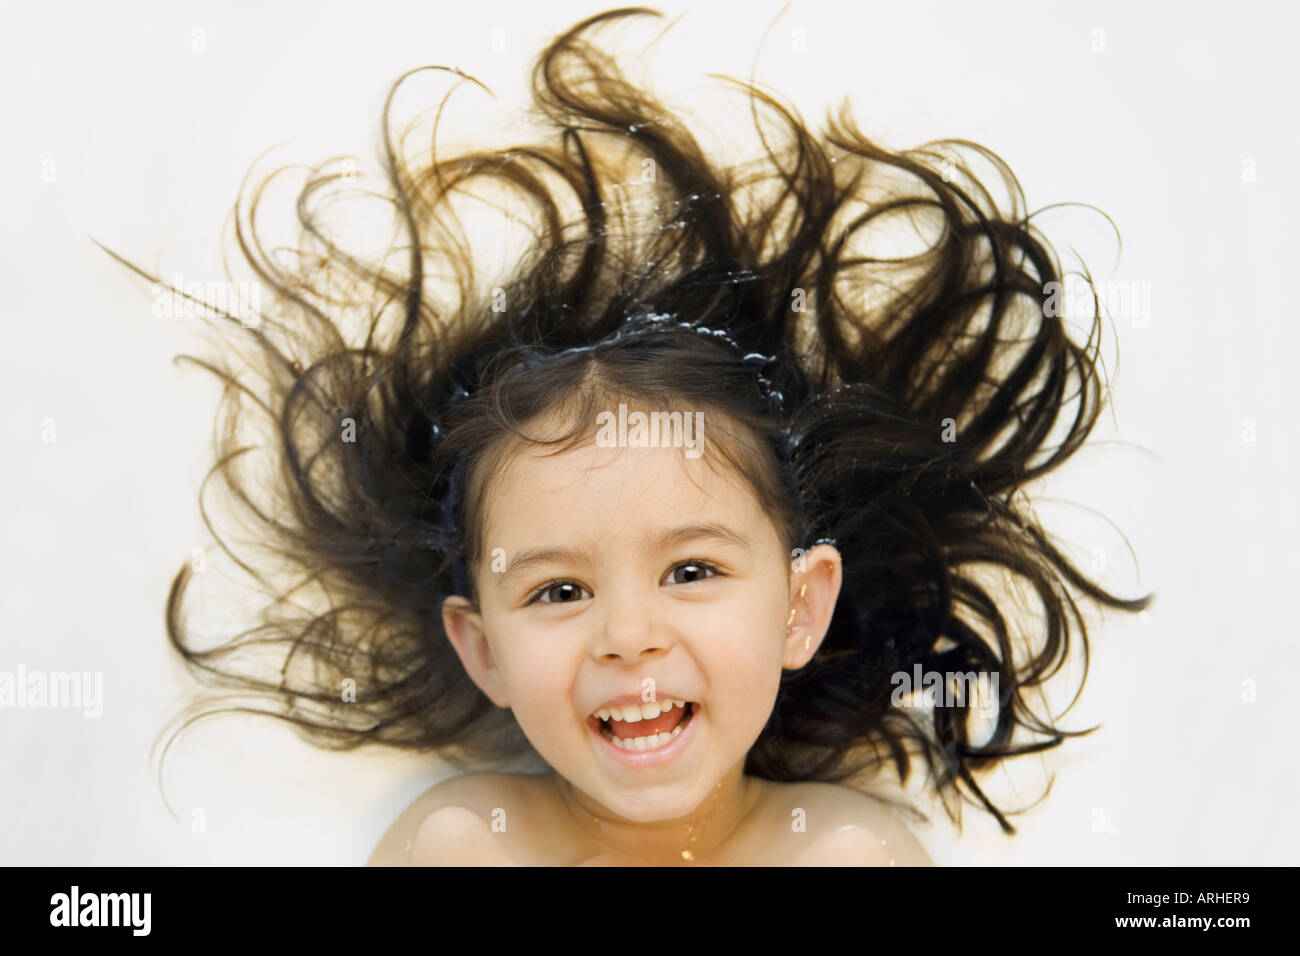 girl in bath with hair floating in water stock photo royalty free image 9176056 alamy. Black Bedroom Furniture Sets. Home Design Ideas